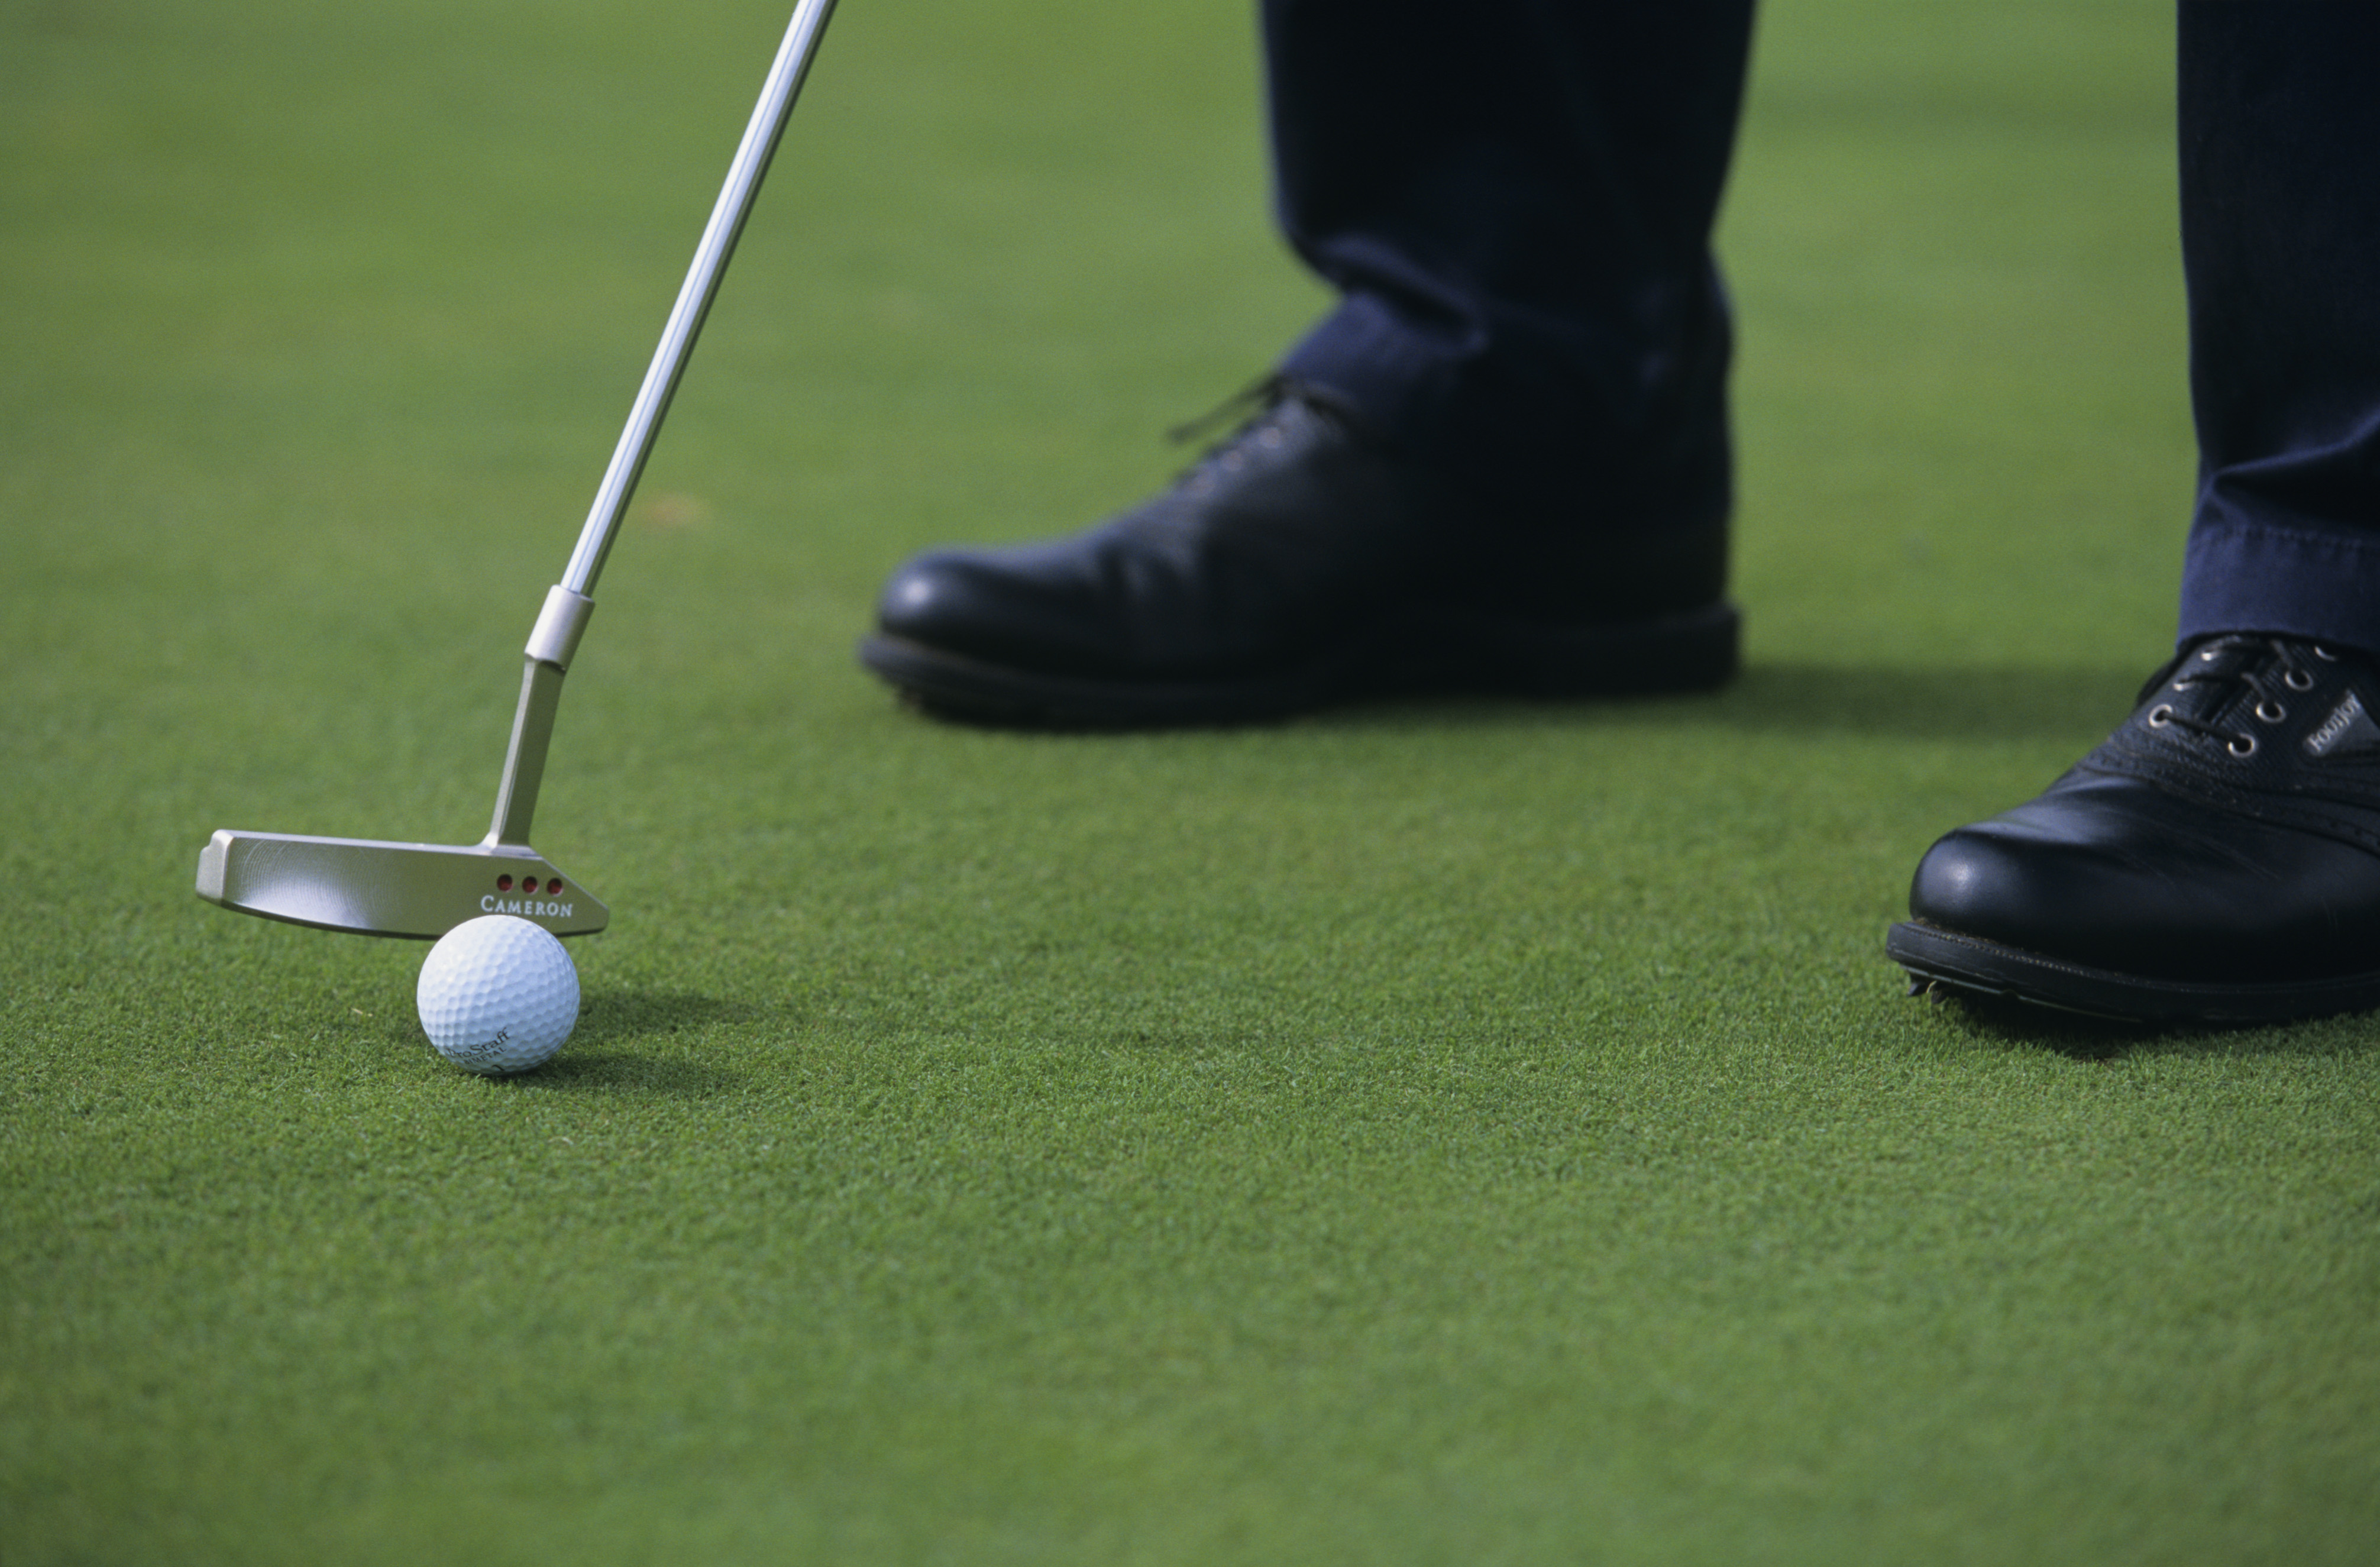 Drill those putts and get some birdies